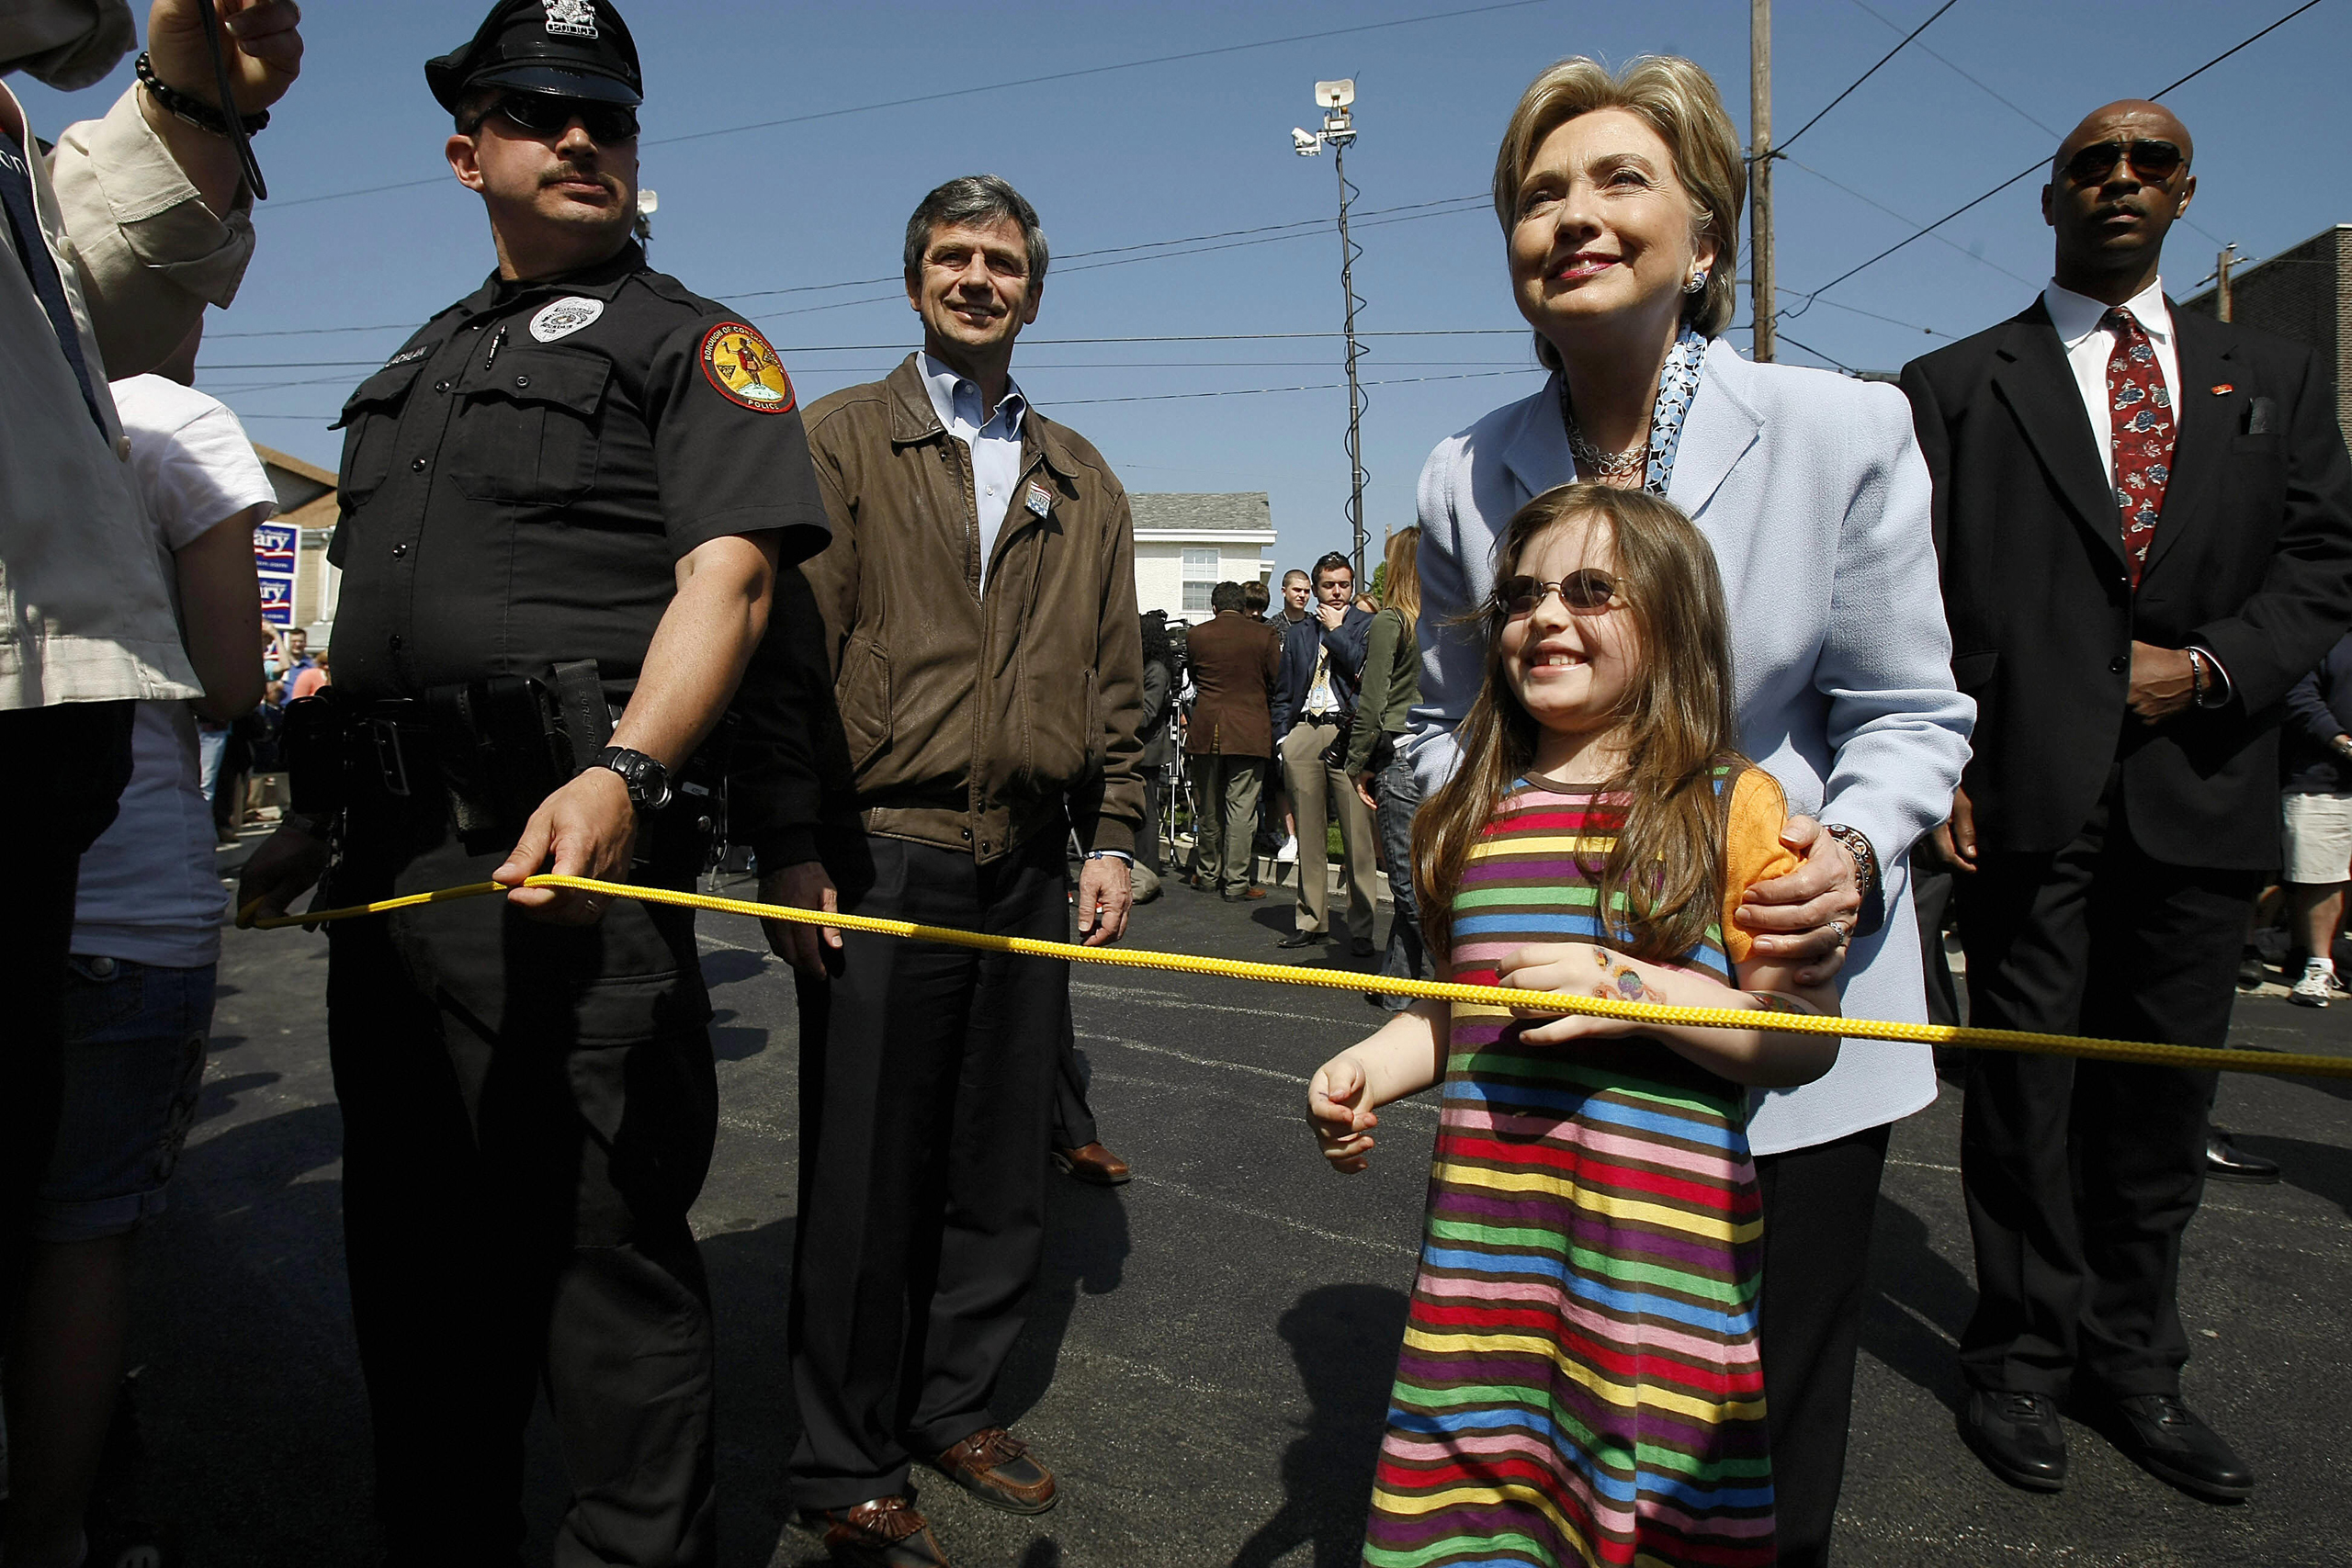 Hillary Clinton poses with a young girl as she visits voters outside a polling station in Conshohocken, PA on April 22, 2008.